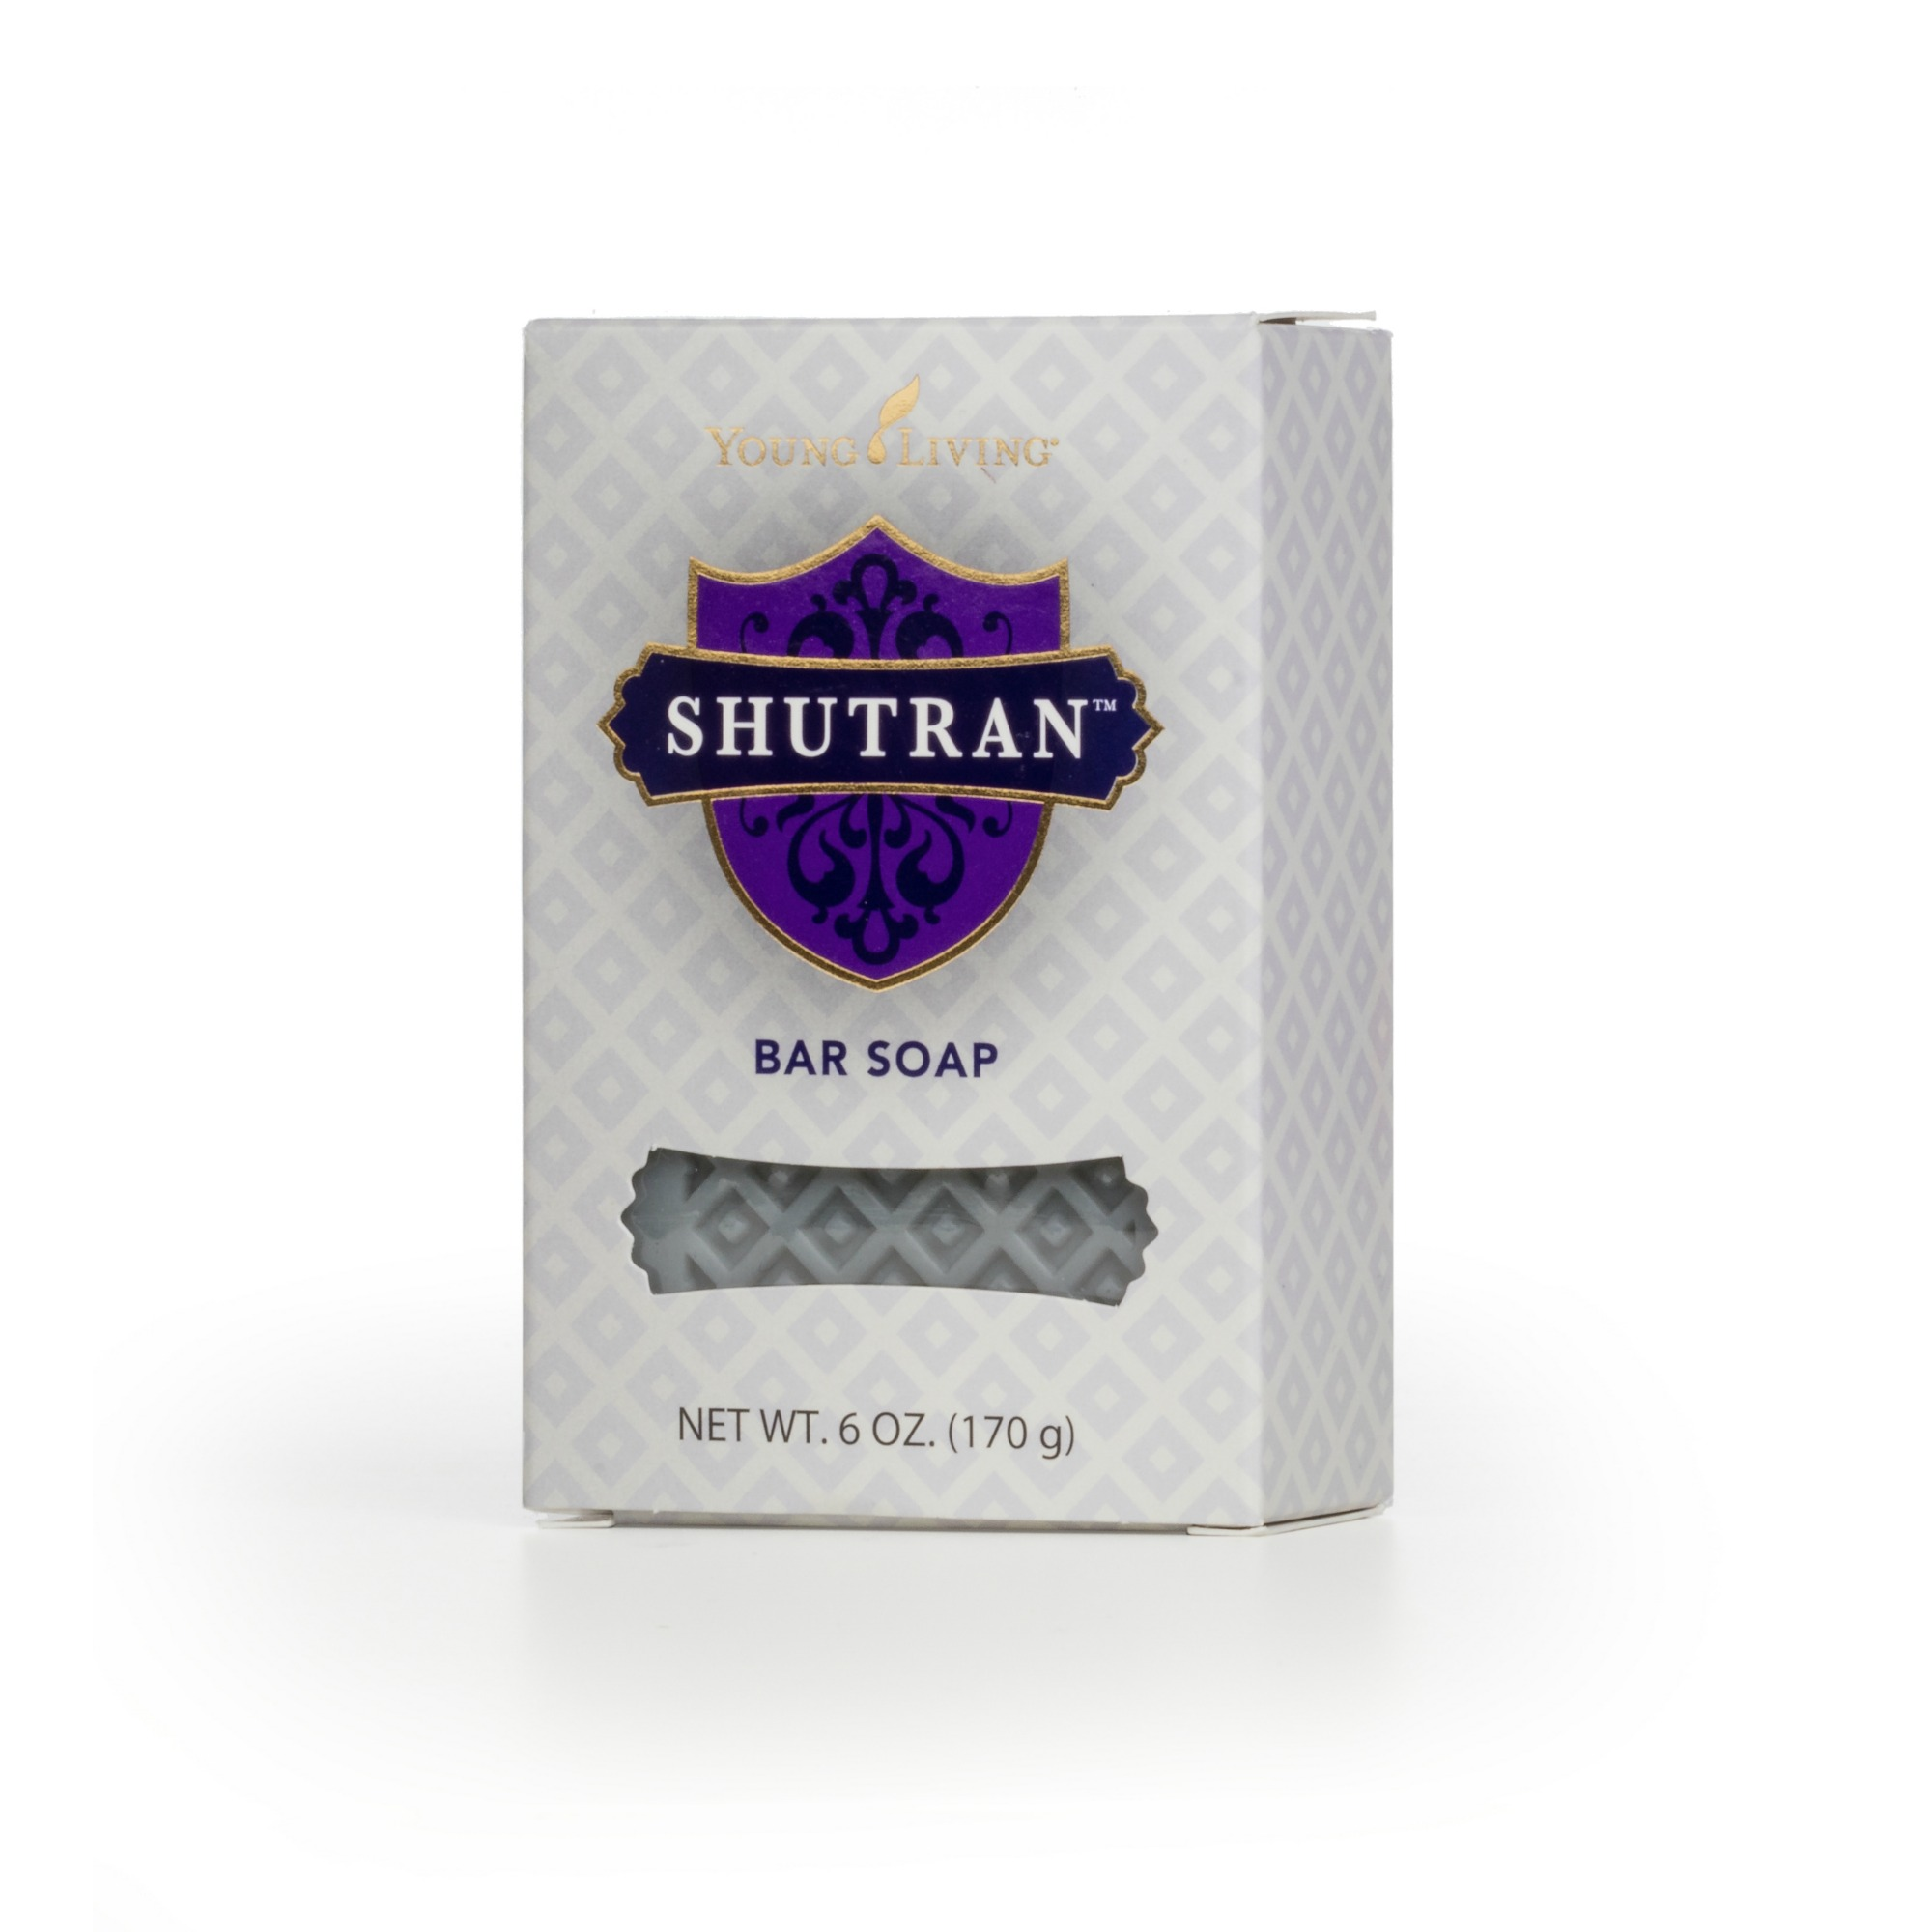 SHUTRAN BAR SOAP    While the masculine scent may appeal to (but not strictly for) men, this bar soap contains ingredients that cleanse and soften the skin without stripping the skin from its natural oils. It also contains essential oils that give it a fresh, exotic smell.   Click here   to learn more about this product.